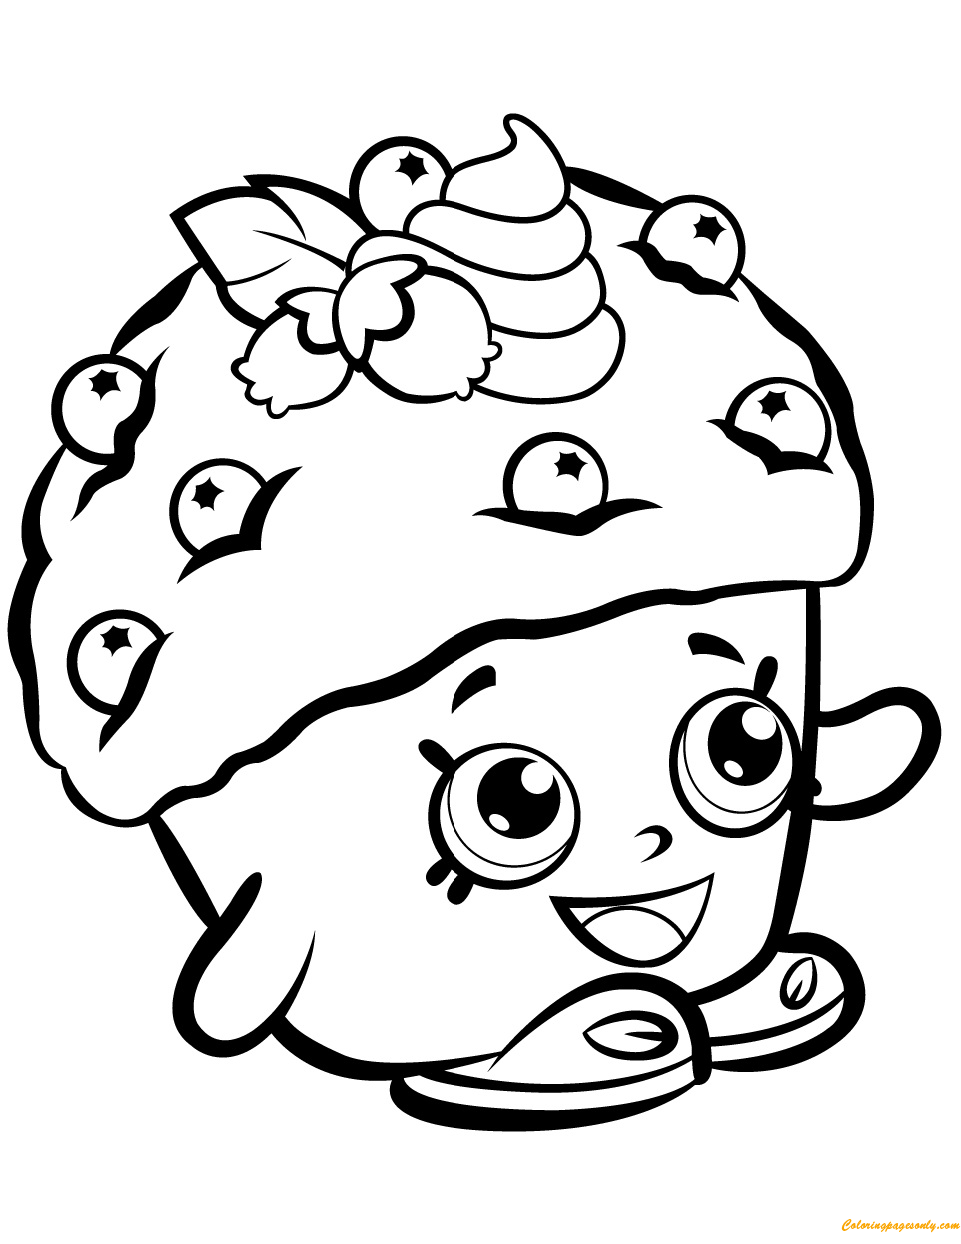 muffin pictures to color cupcake muffin bakery frosting icing coloring book png to color pictures muffin